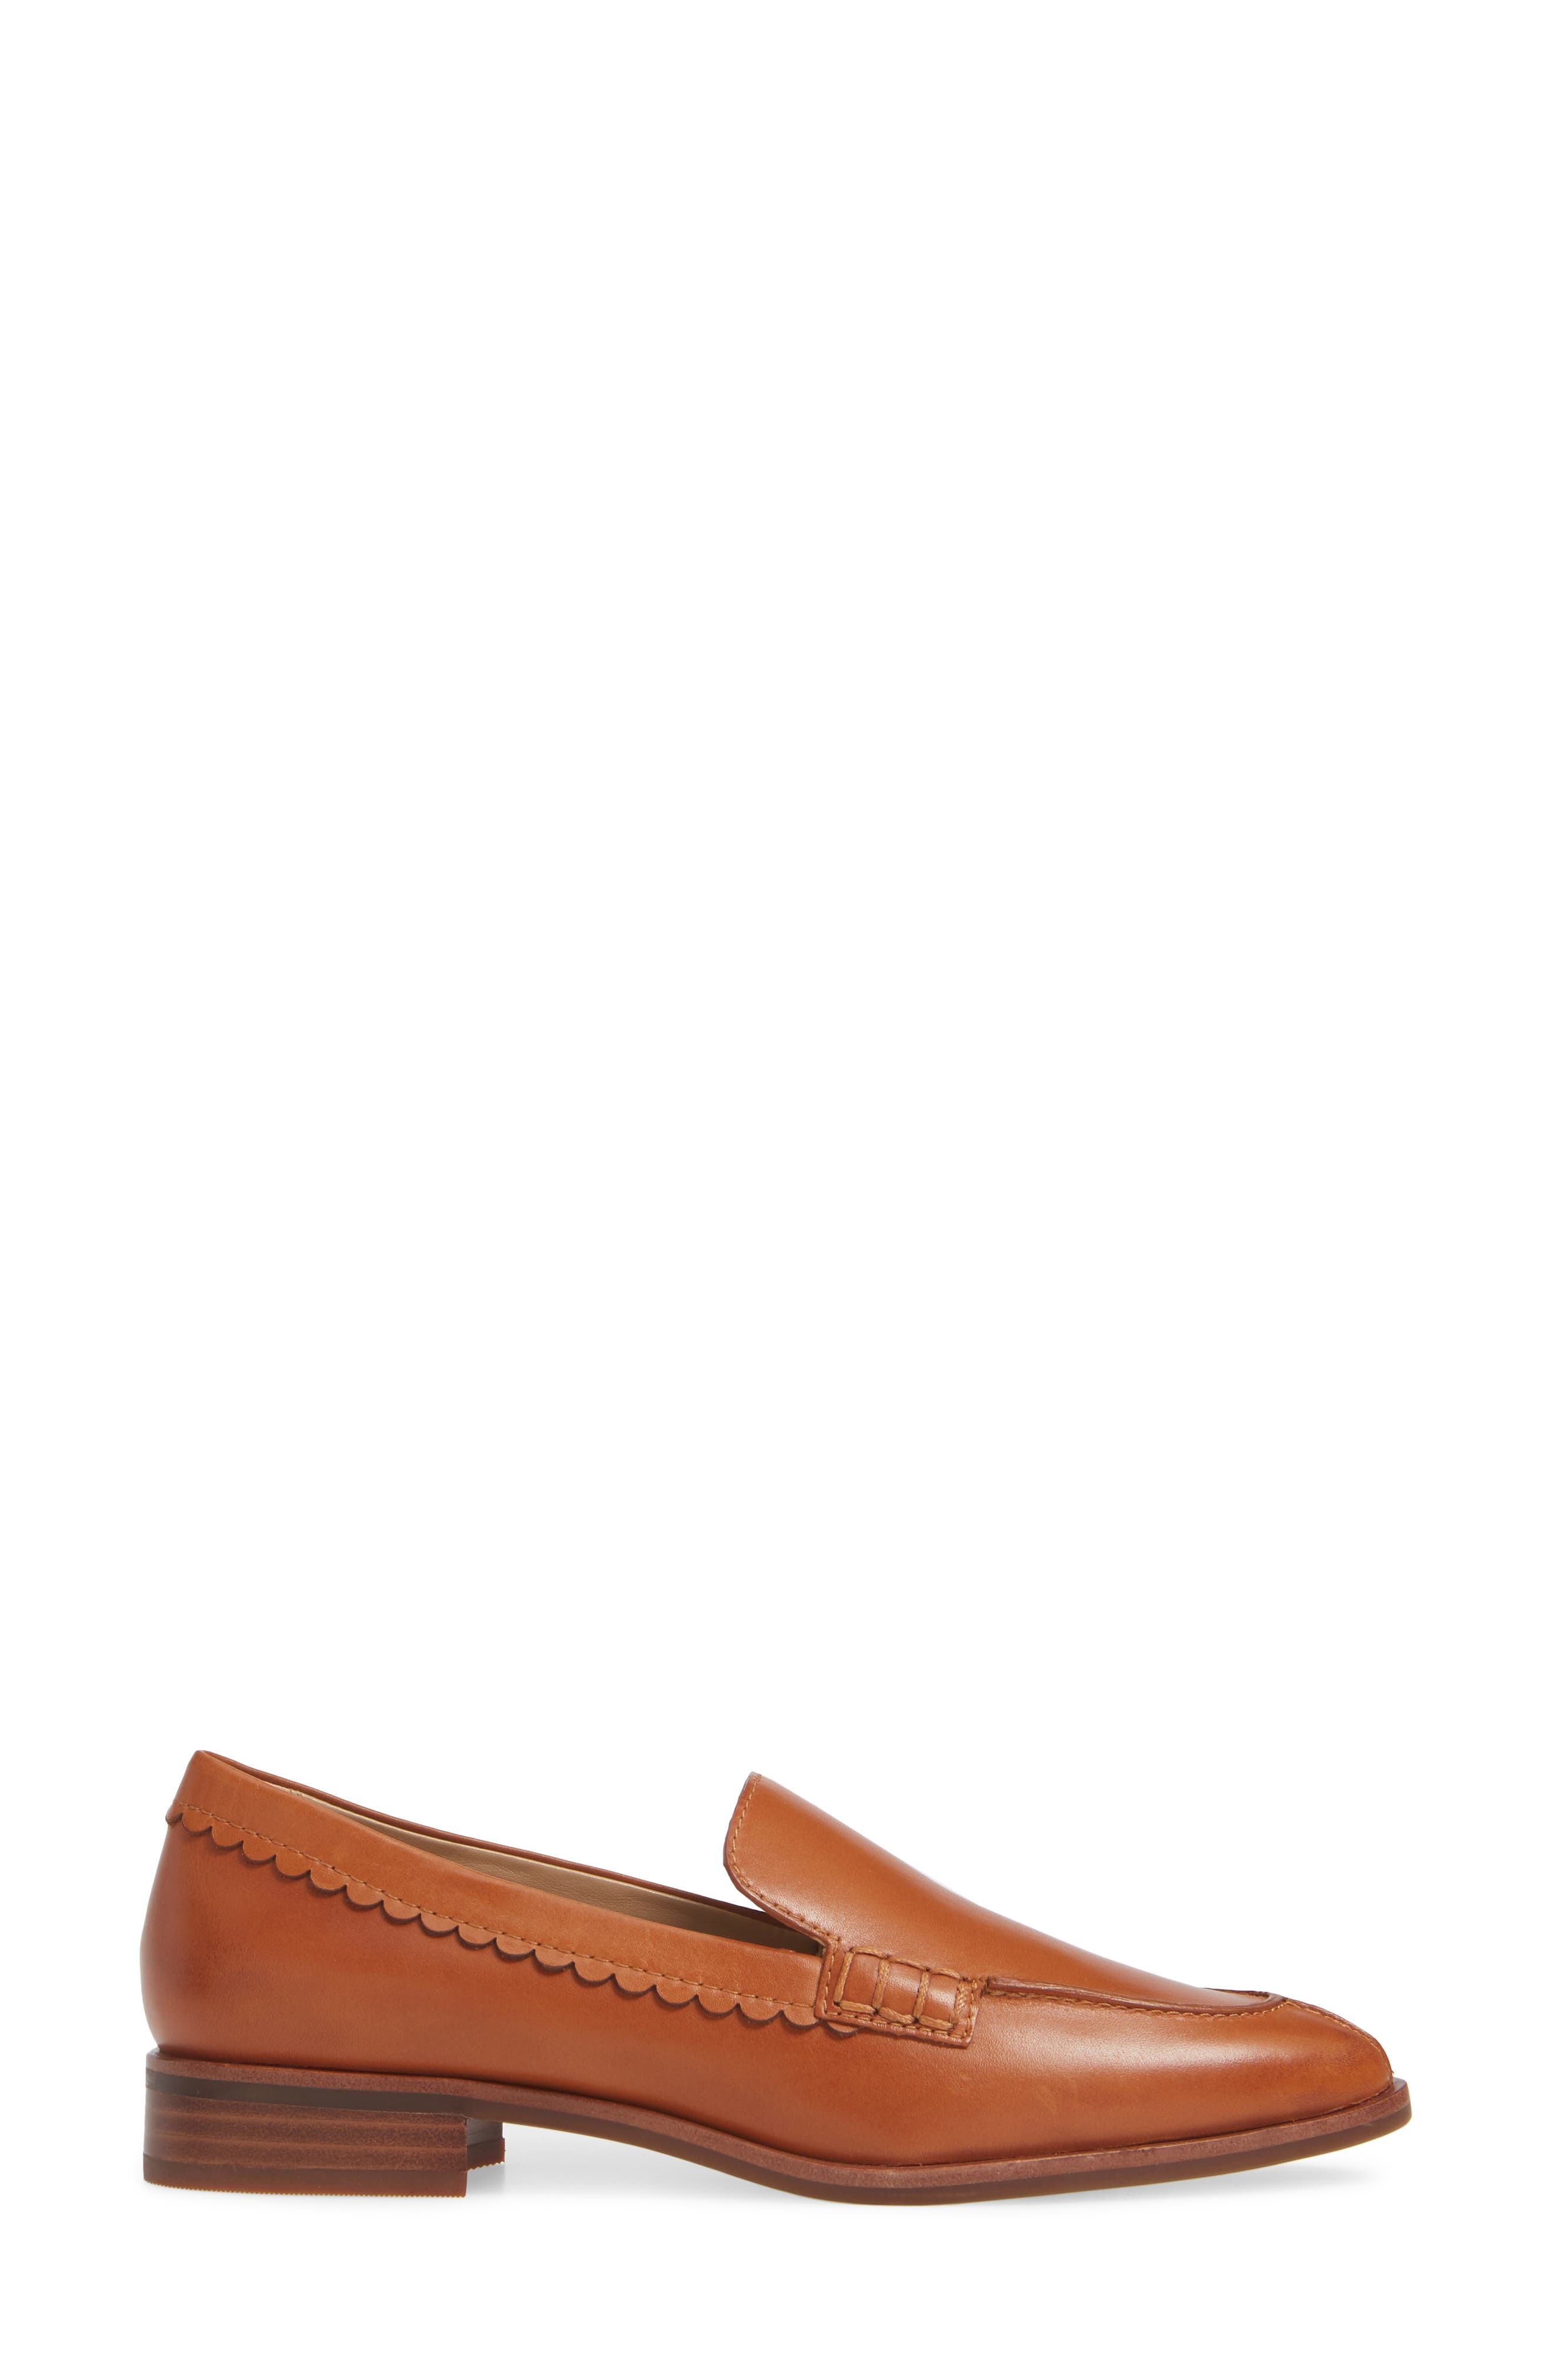 Bowery Loafer,                             Alternate thumbnail 3, color,                             COCONUT VACHETTA LEATHER